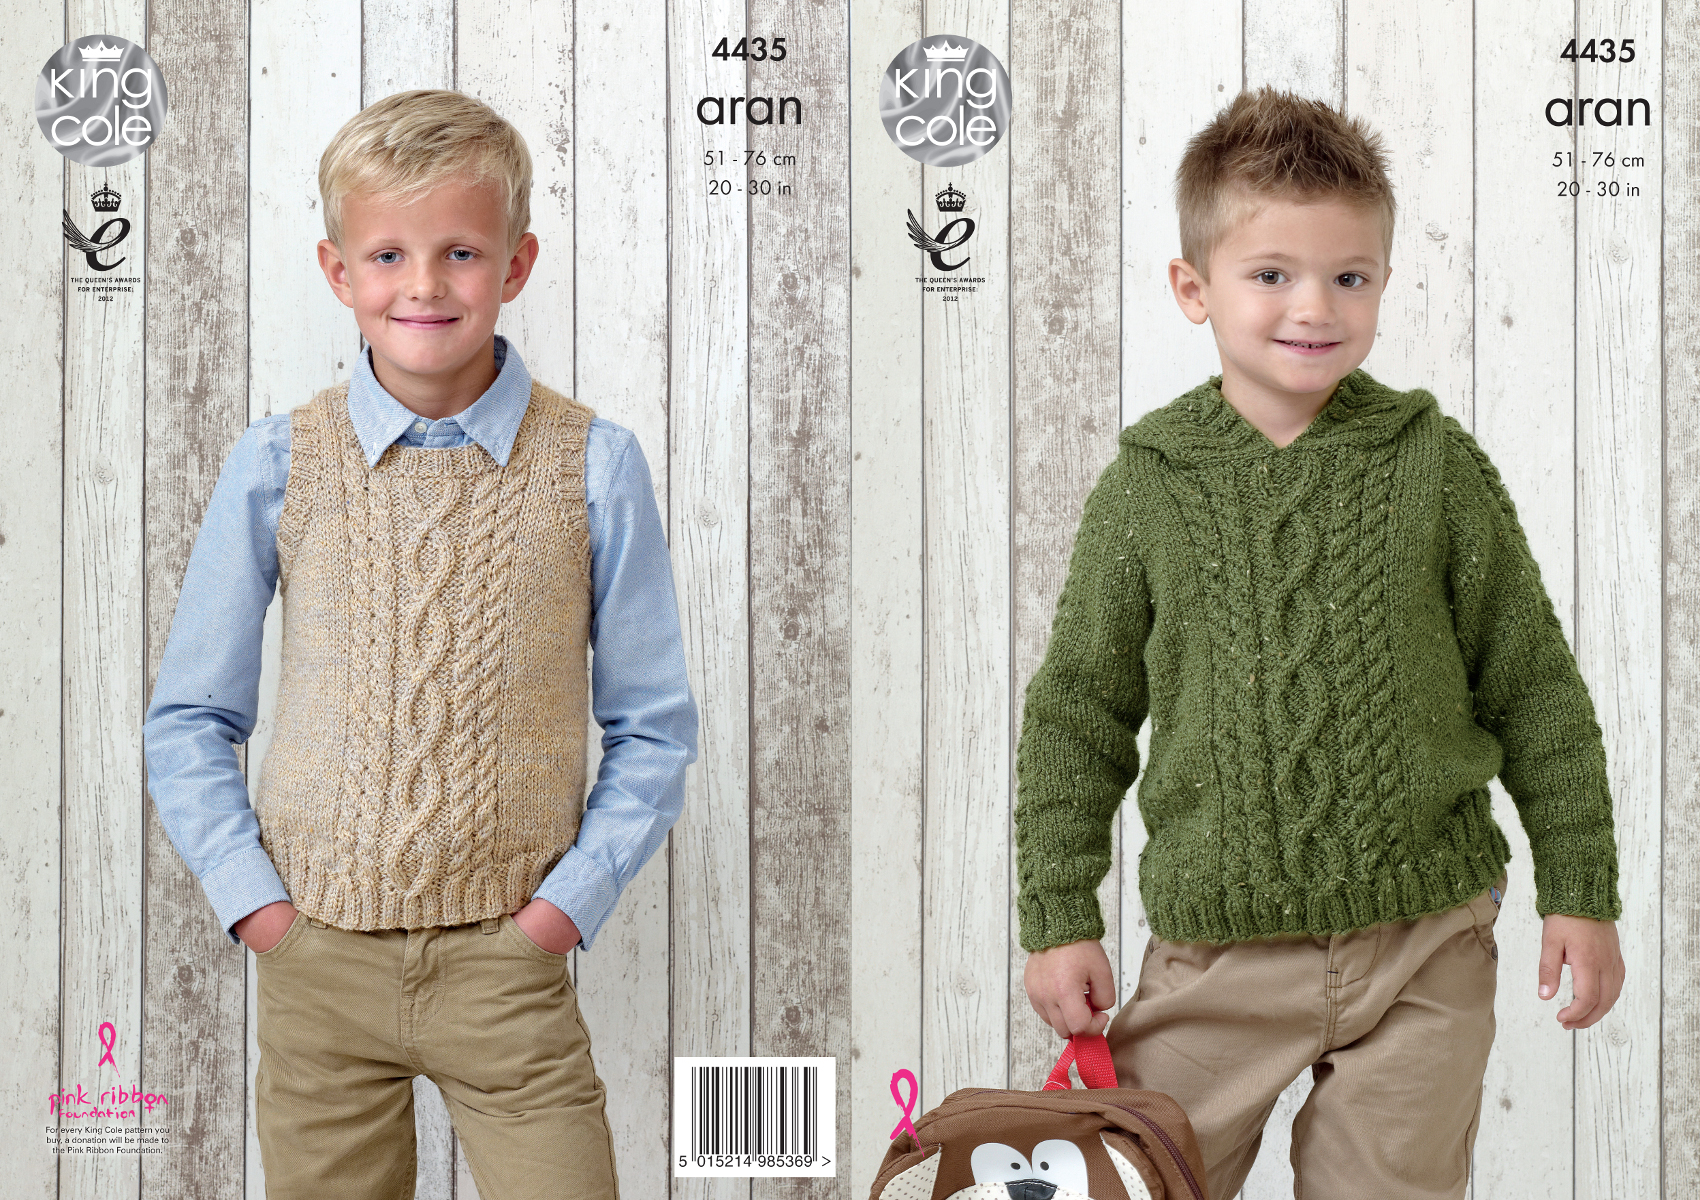 Boys Hooded Sweater & Slipover Knitting Pattern King Cole Big Value ...